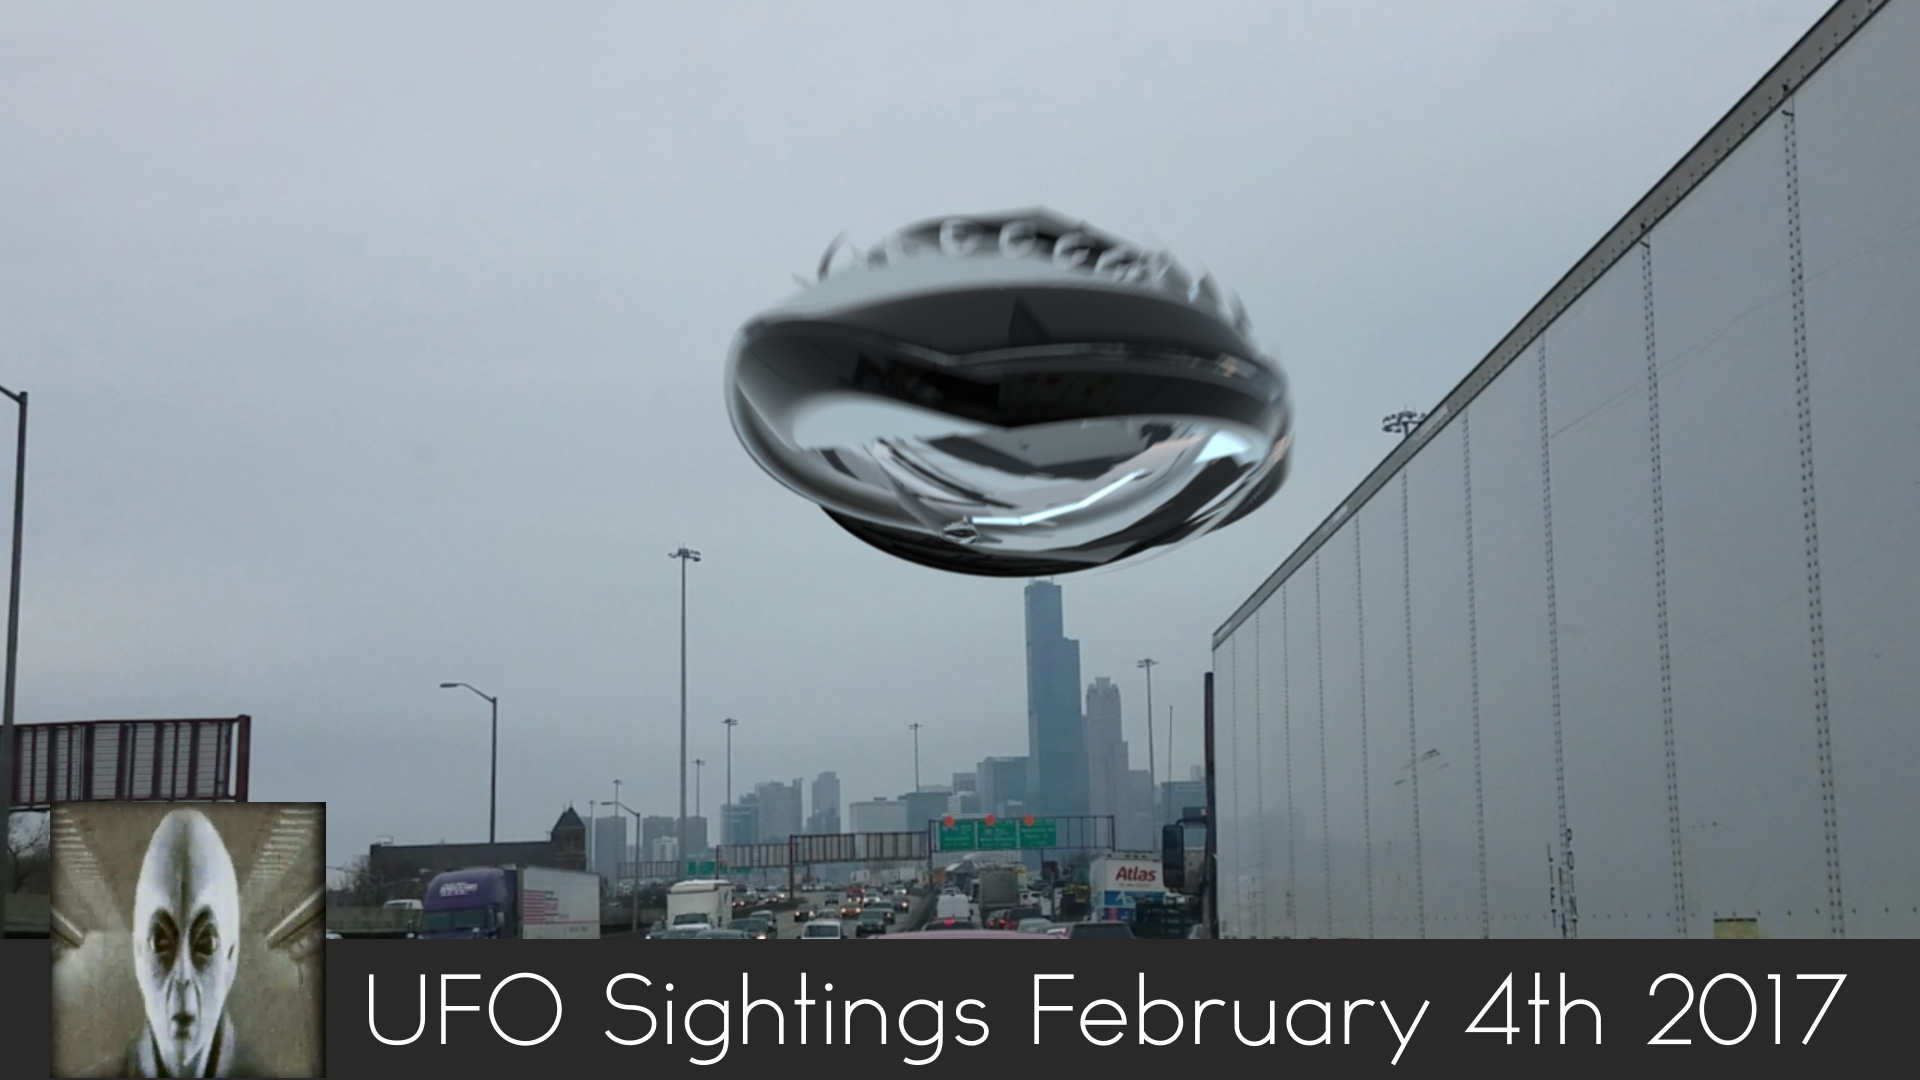 UFO Sightings Fast Moving UFOs February 4th 2017 ...